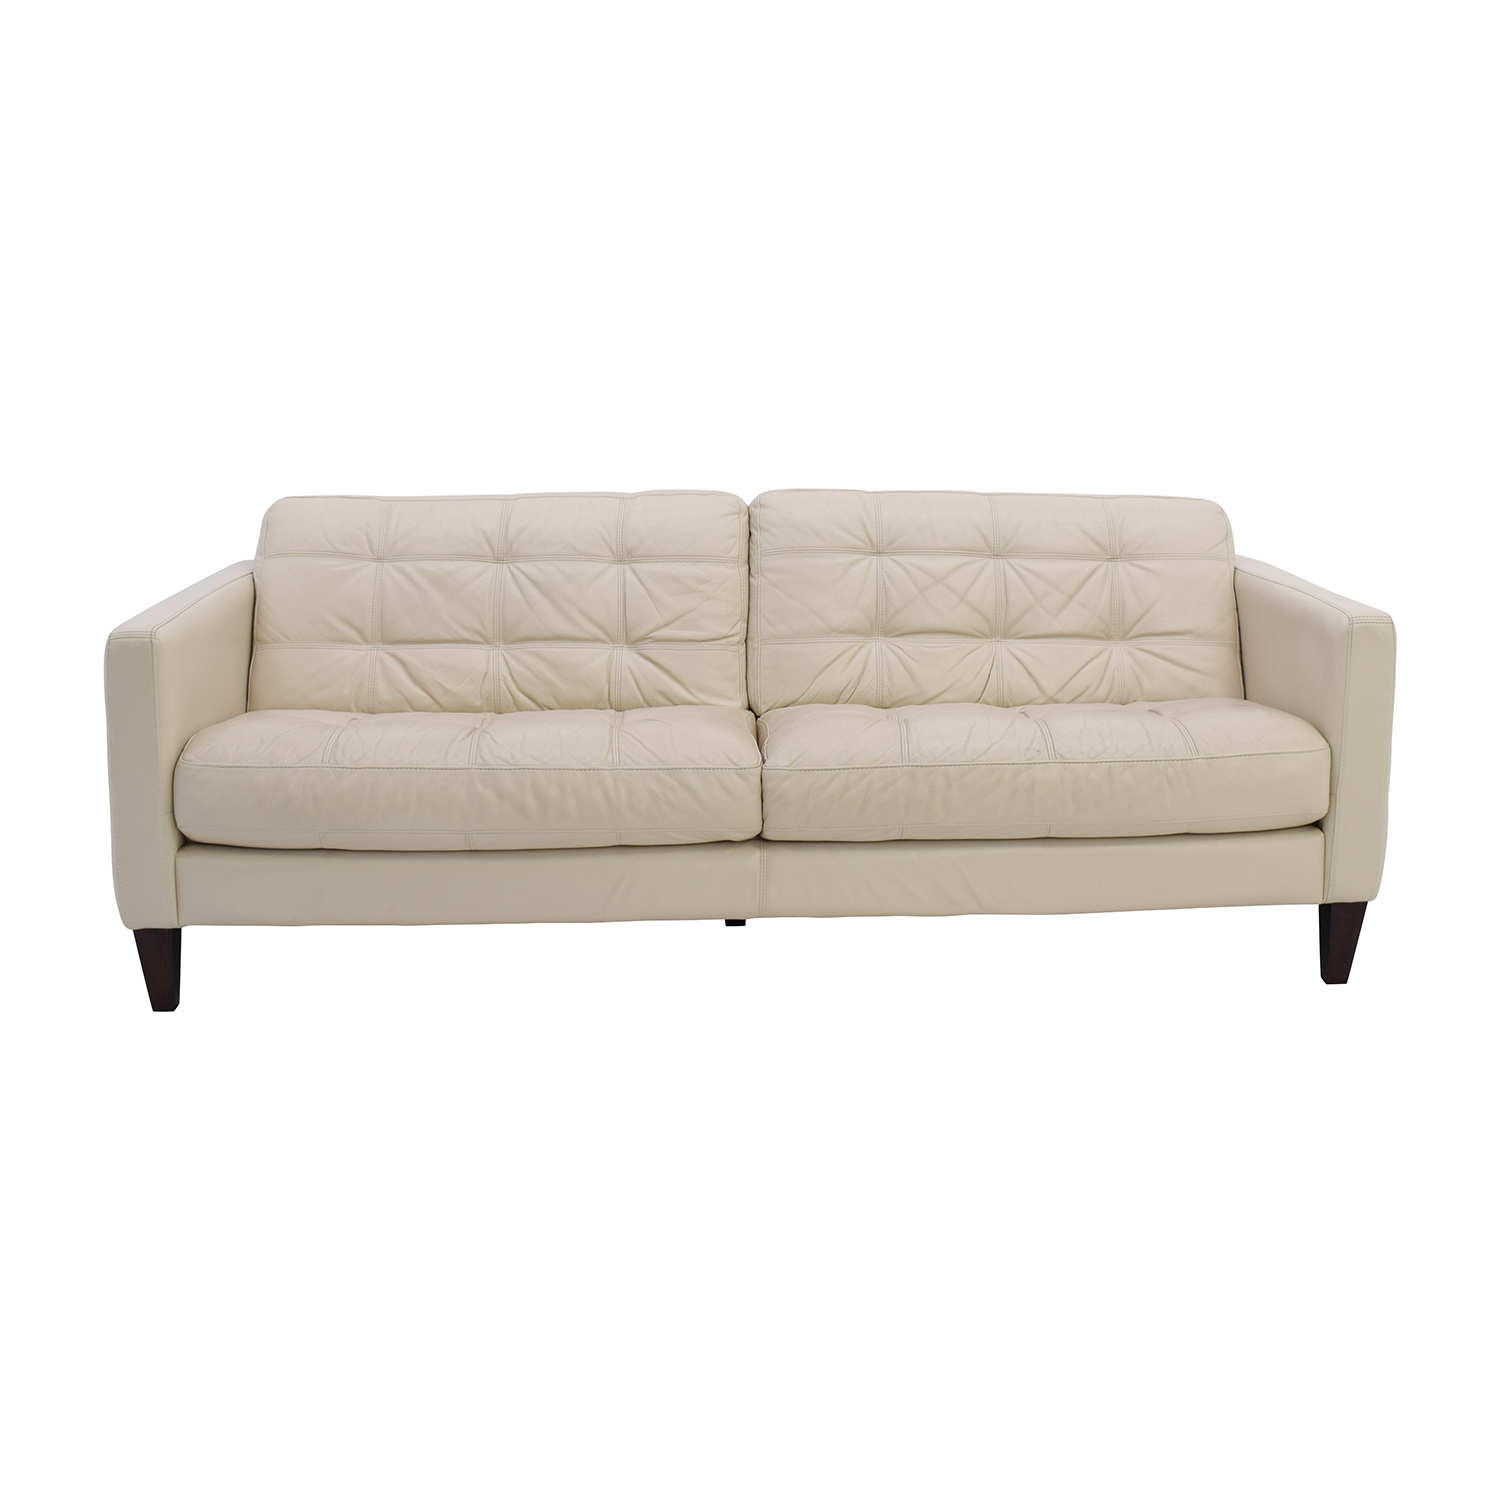 buy Macys Macys Milan Pearl Leather Sofa online